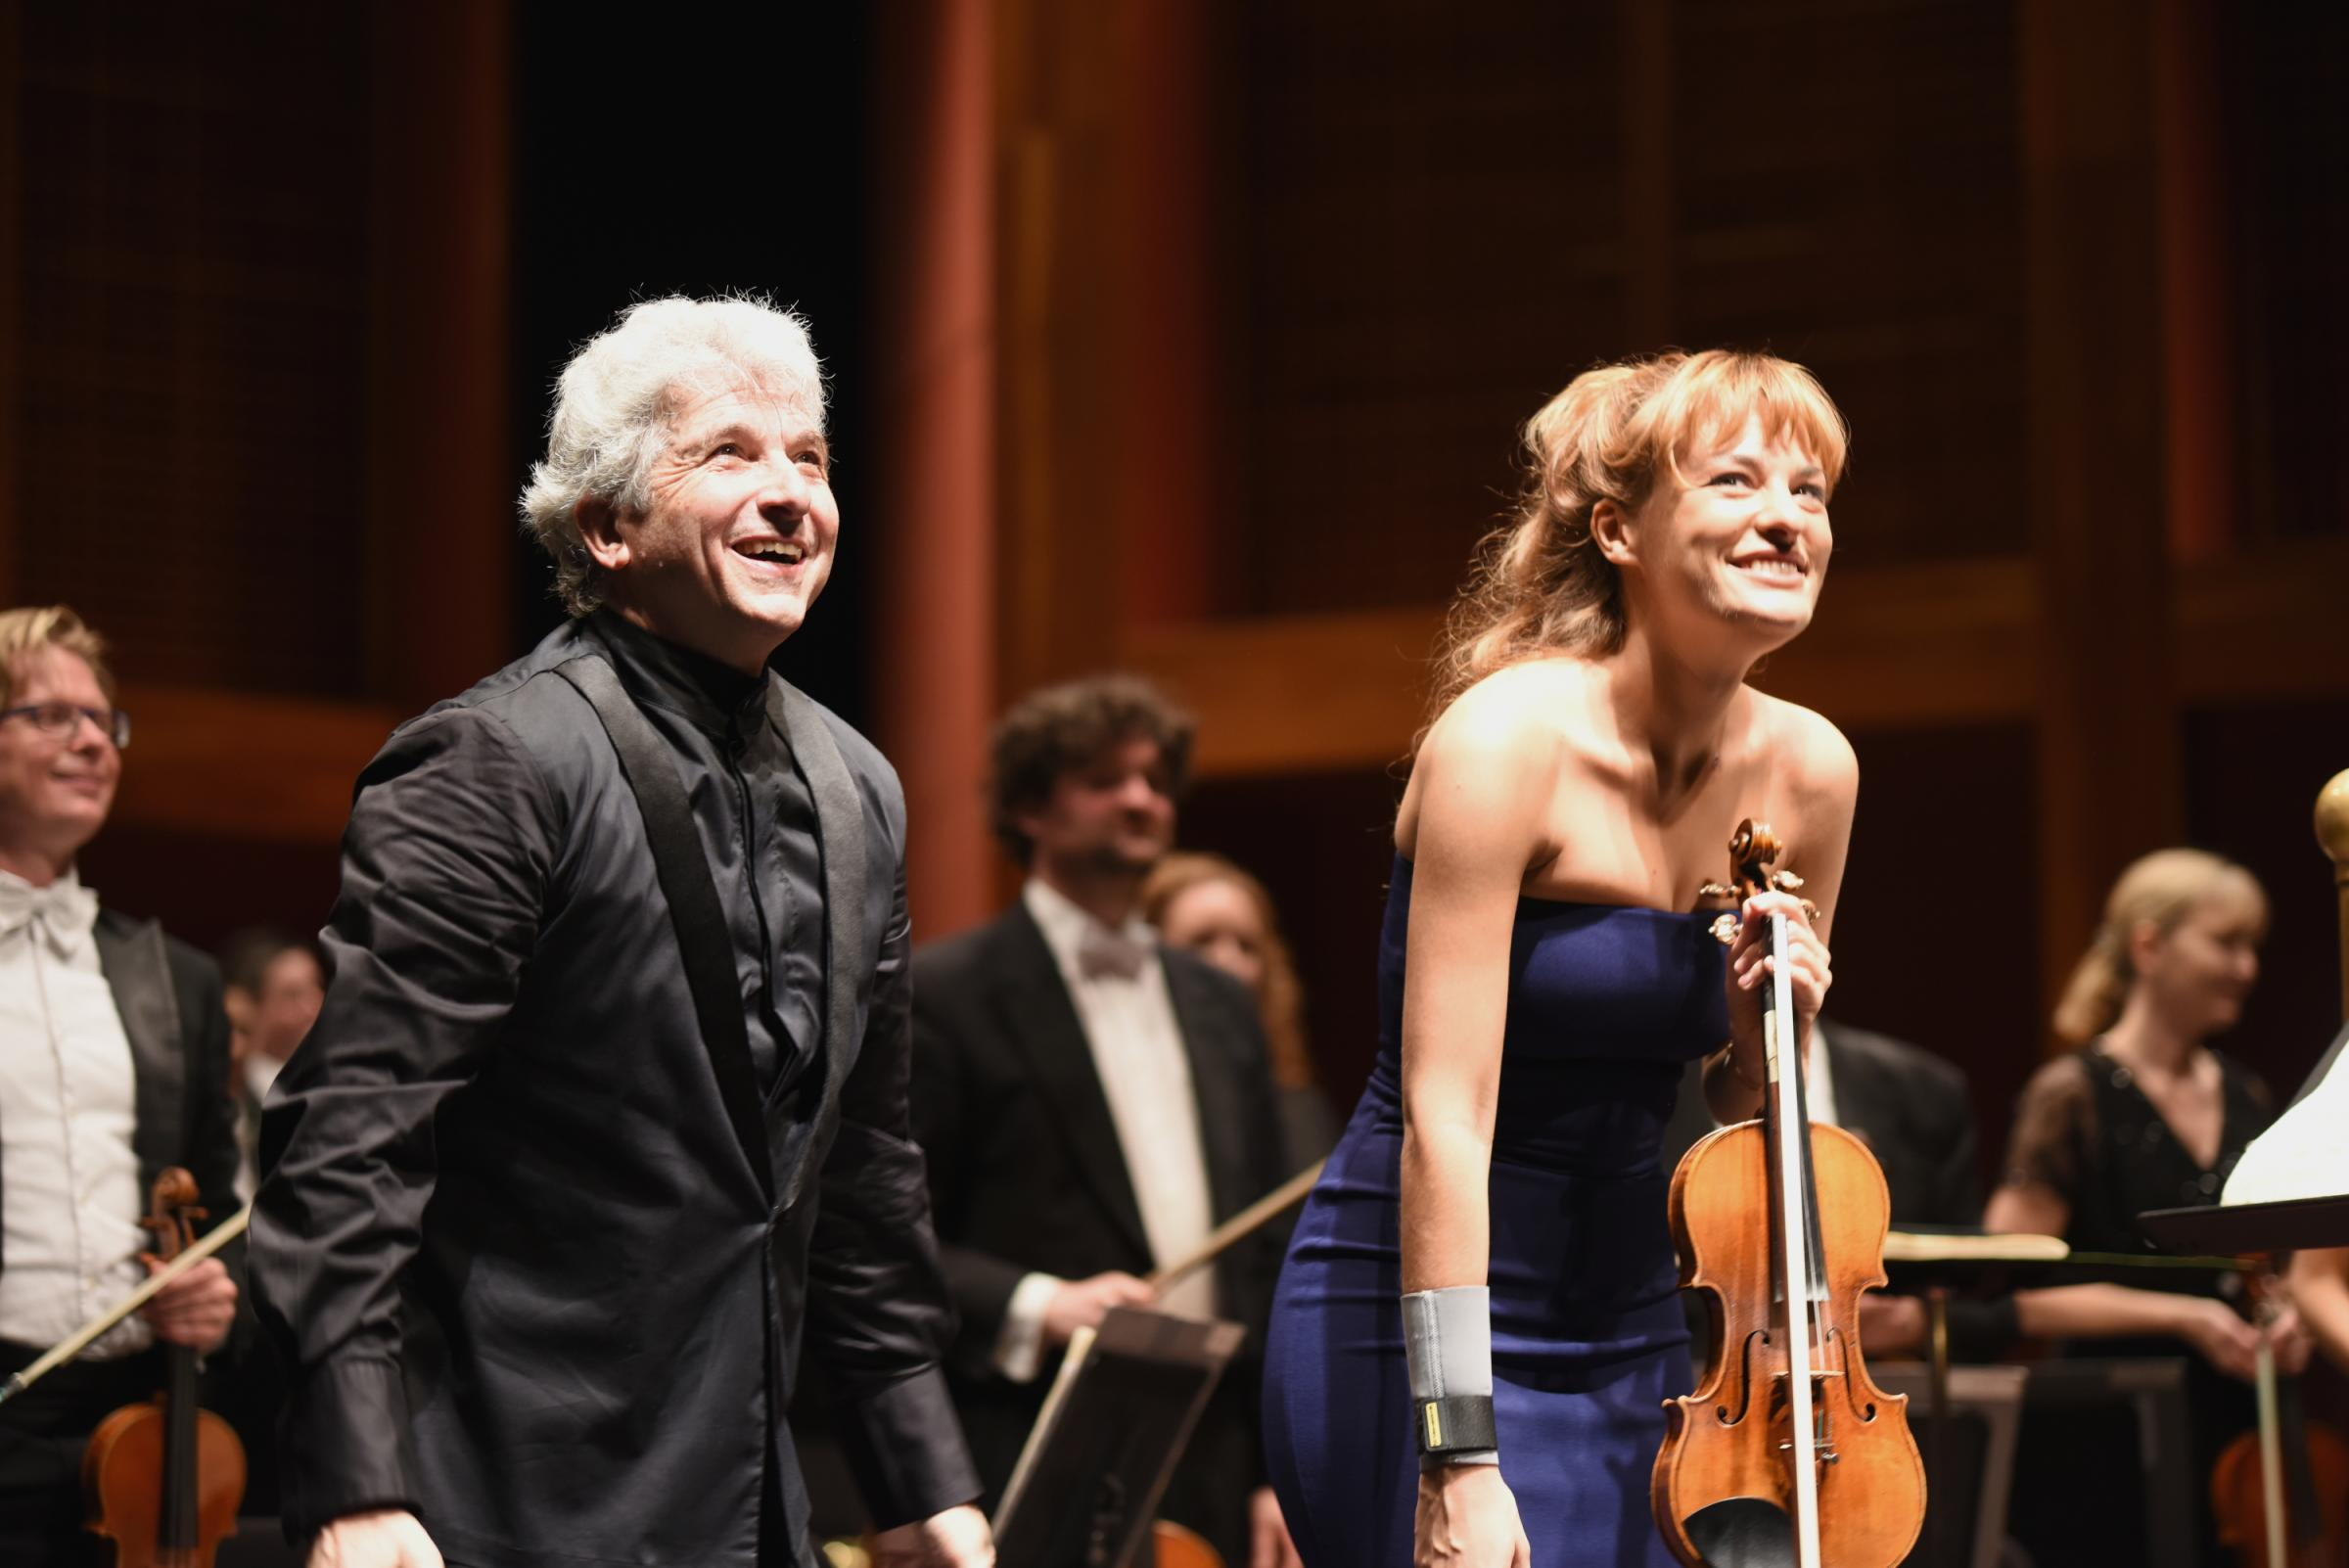 Peter Oundjian and Nicola Benedetti with RSNO at Broward Center, Fort Lauderdale, Florida. Picture: Daniel Pollitt